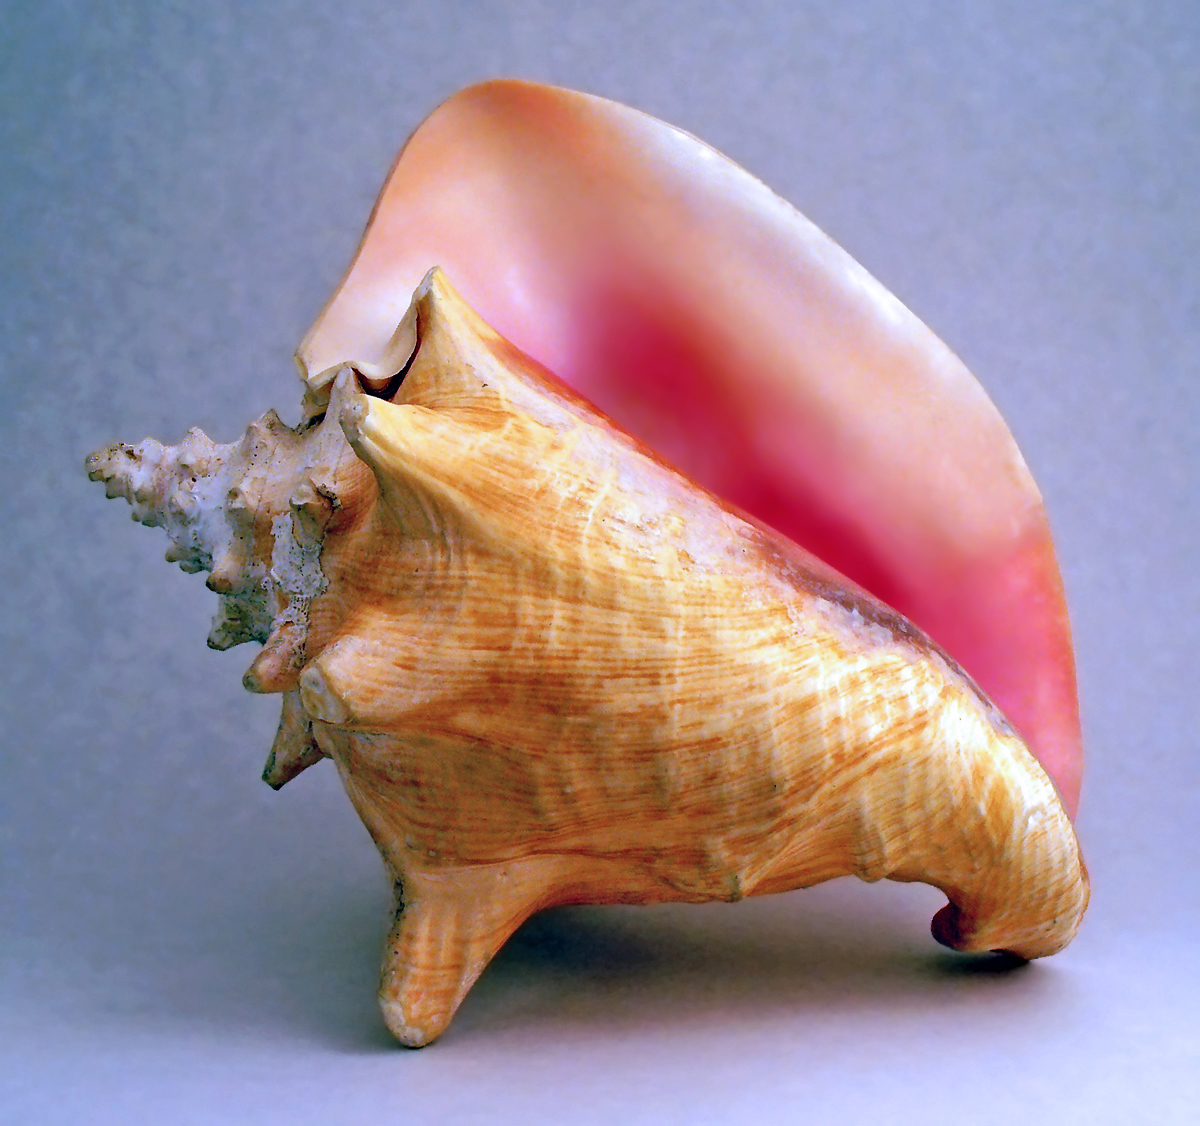 File:Conch shell 2.jpg - Wikipedia